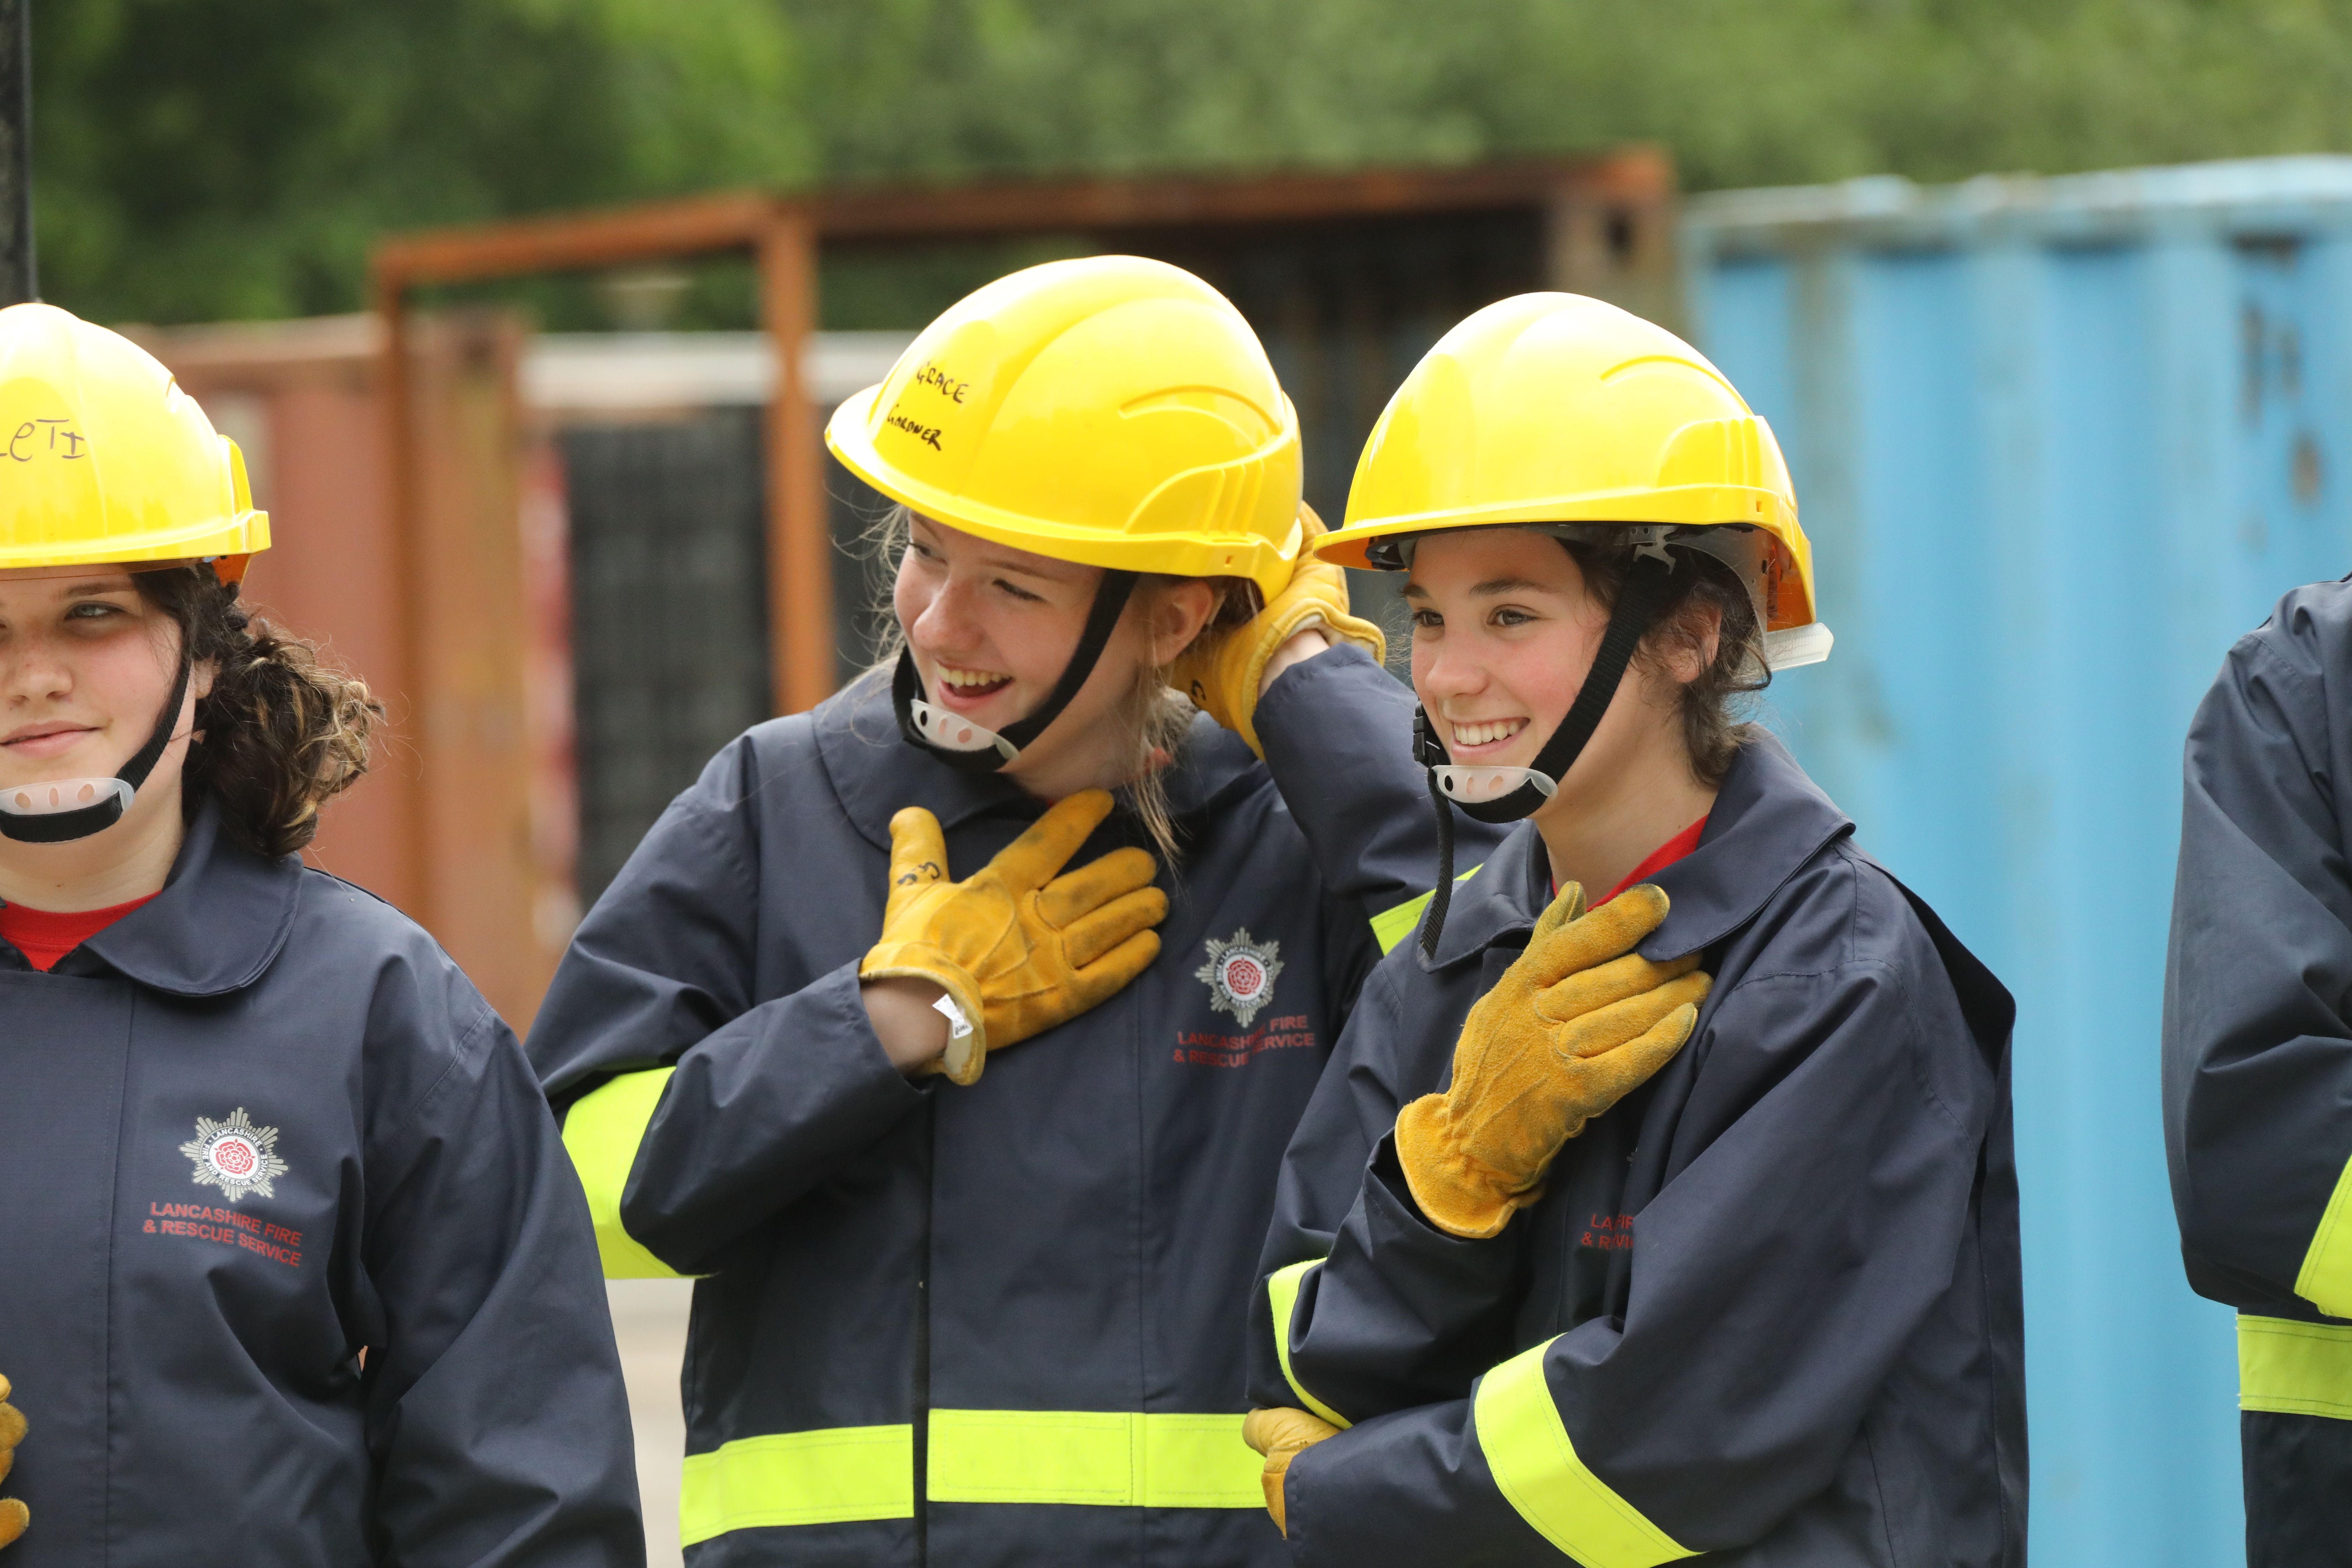 Fire Cadets – Lancashire Fire and Rescue Service